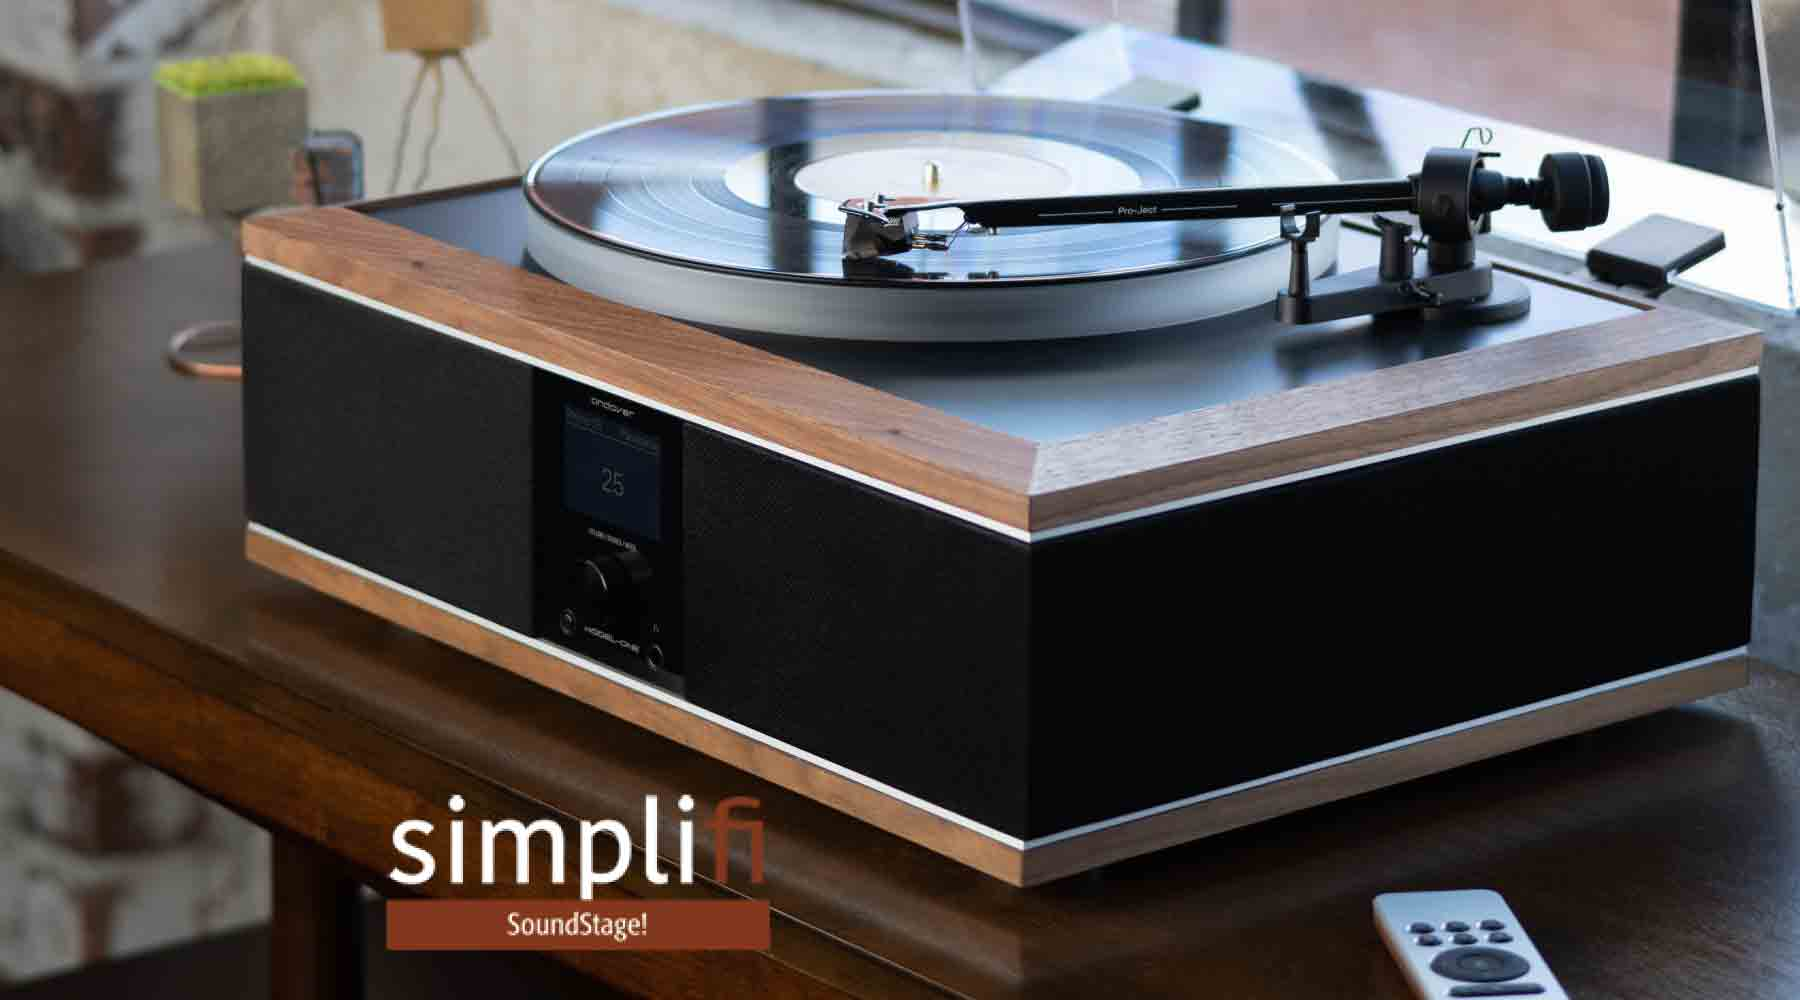 Model-One Review by SoundStage! Simpifi